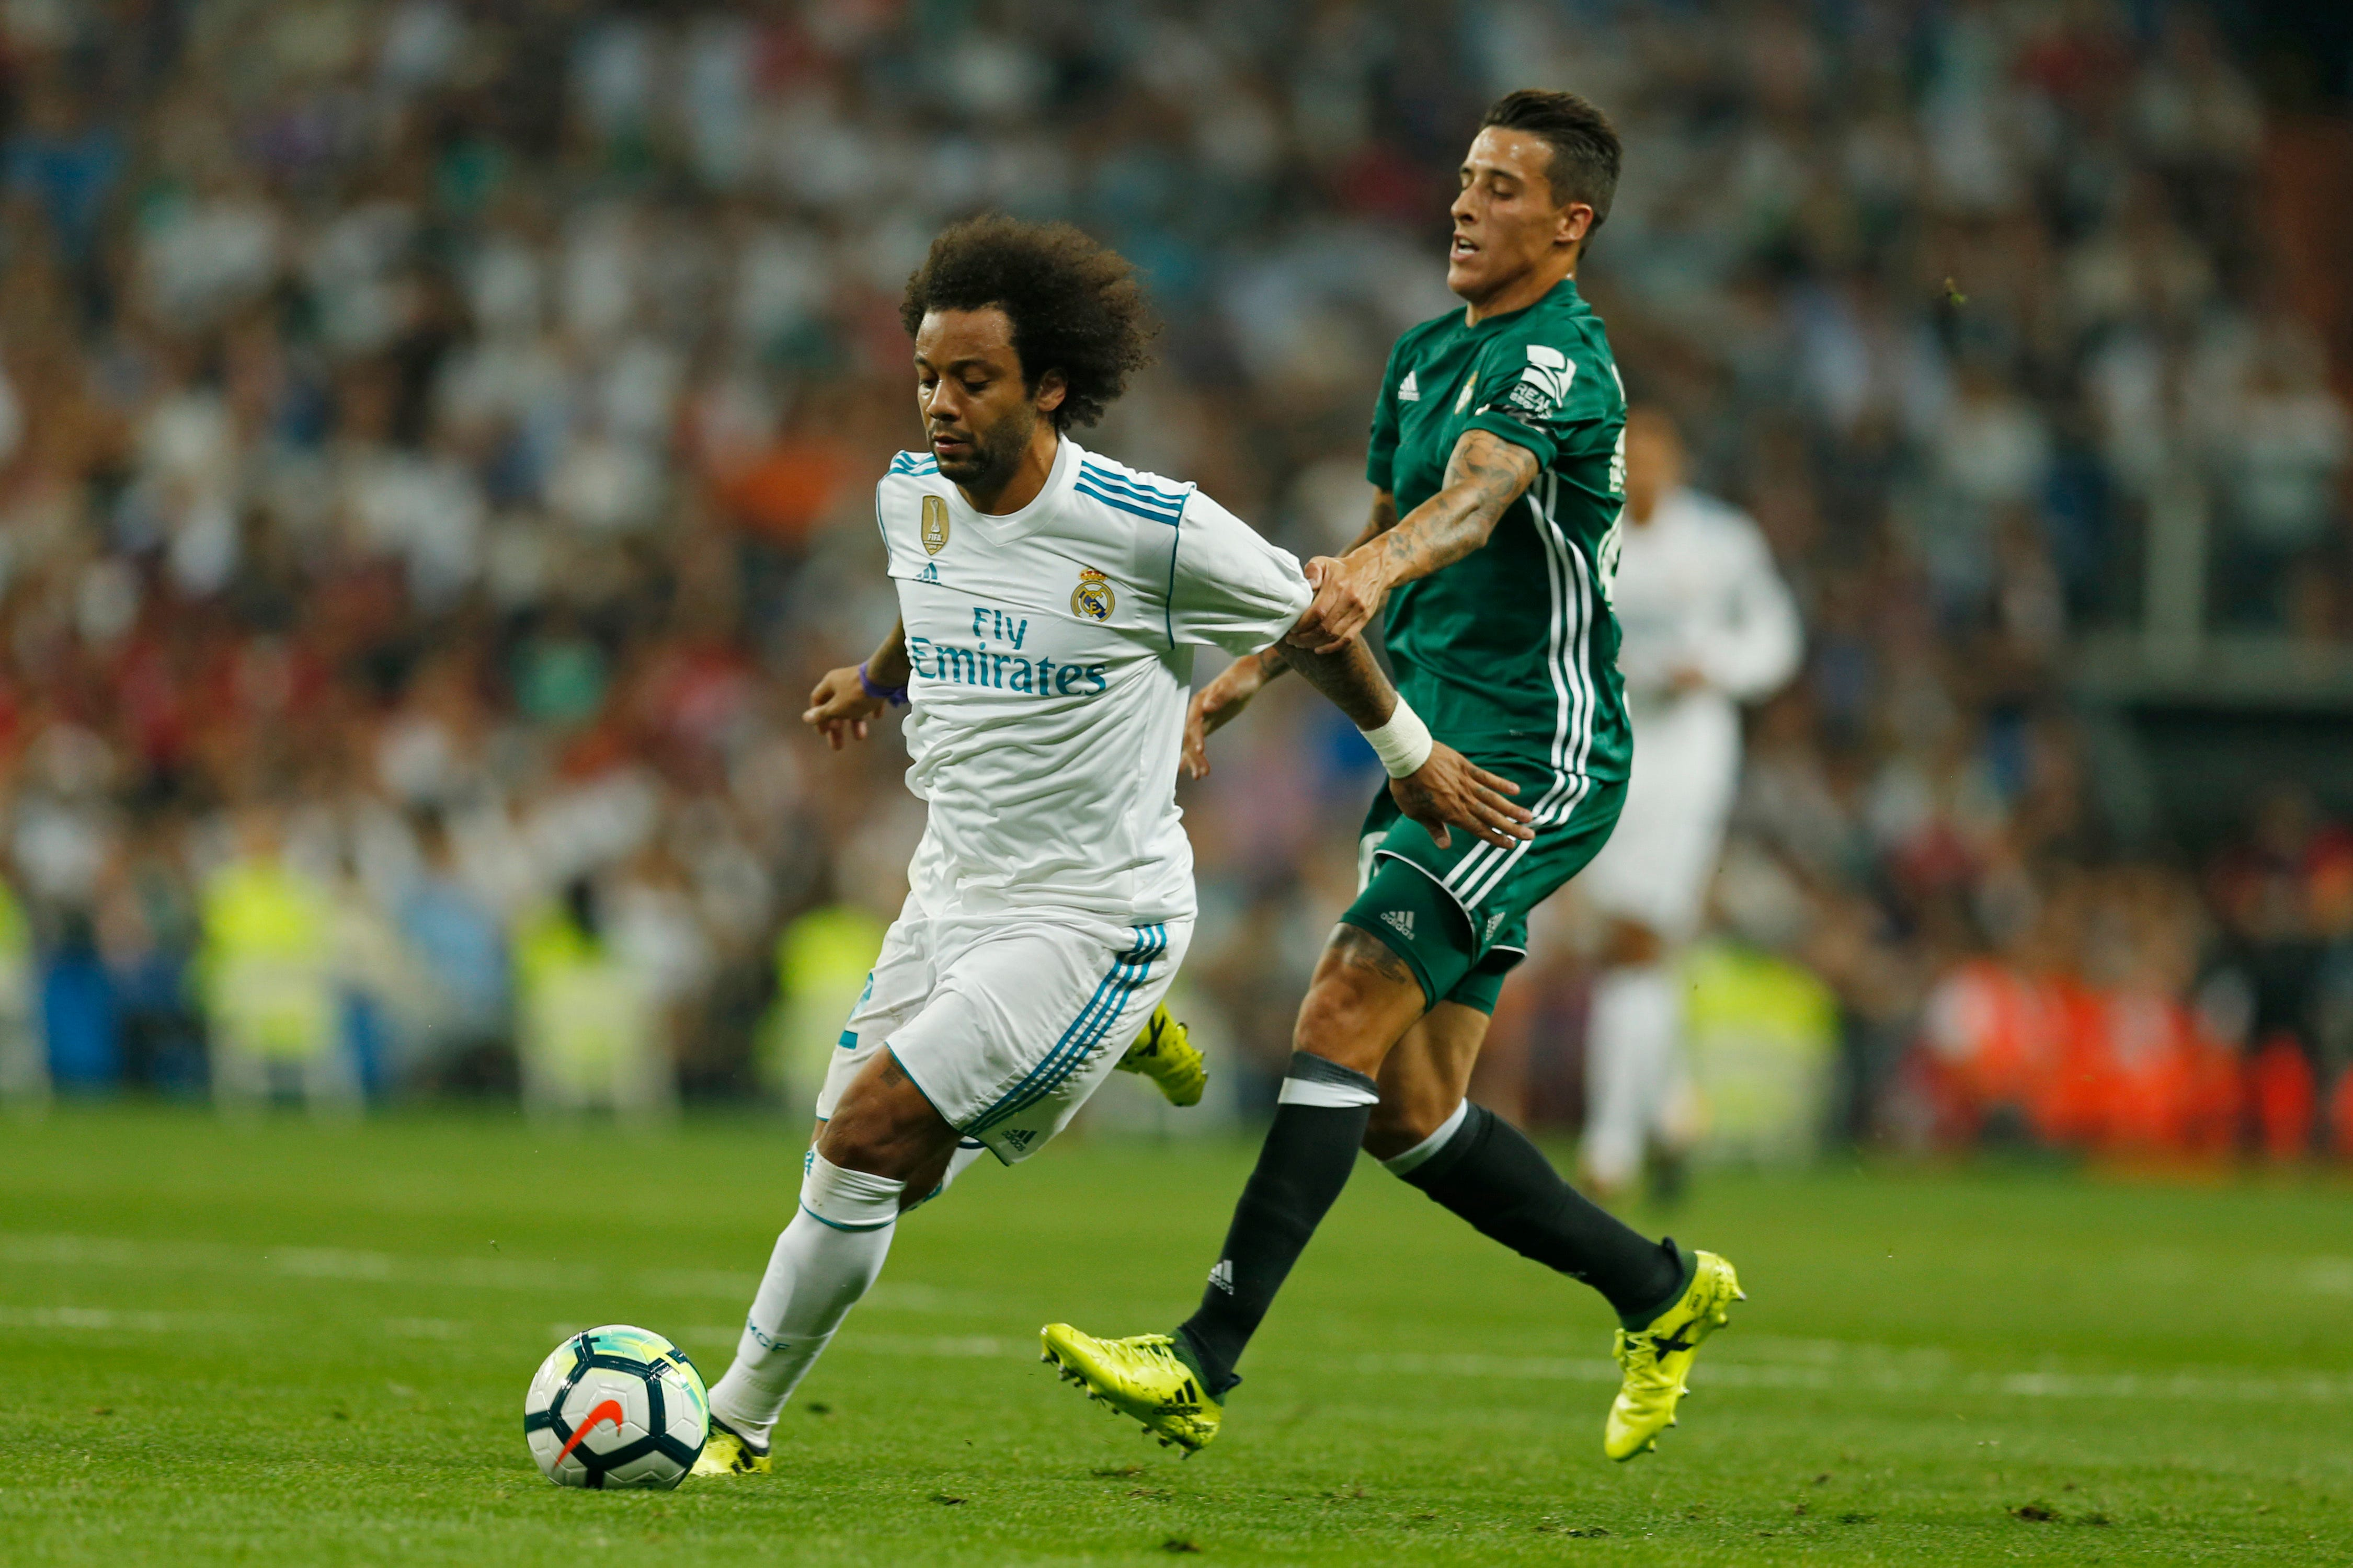 Real Madrid adds Marcelo to list of injured players